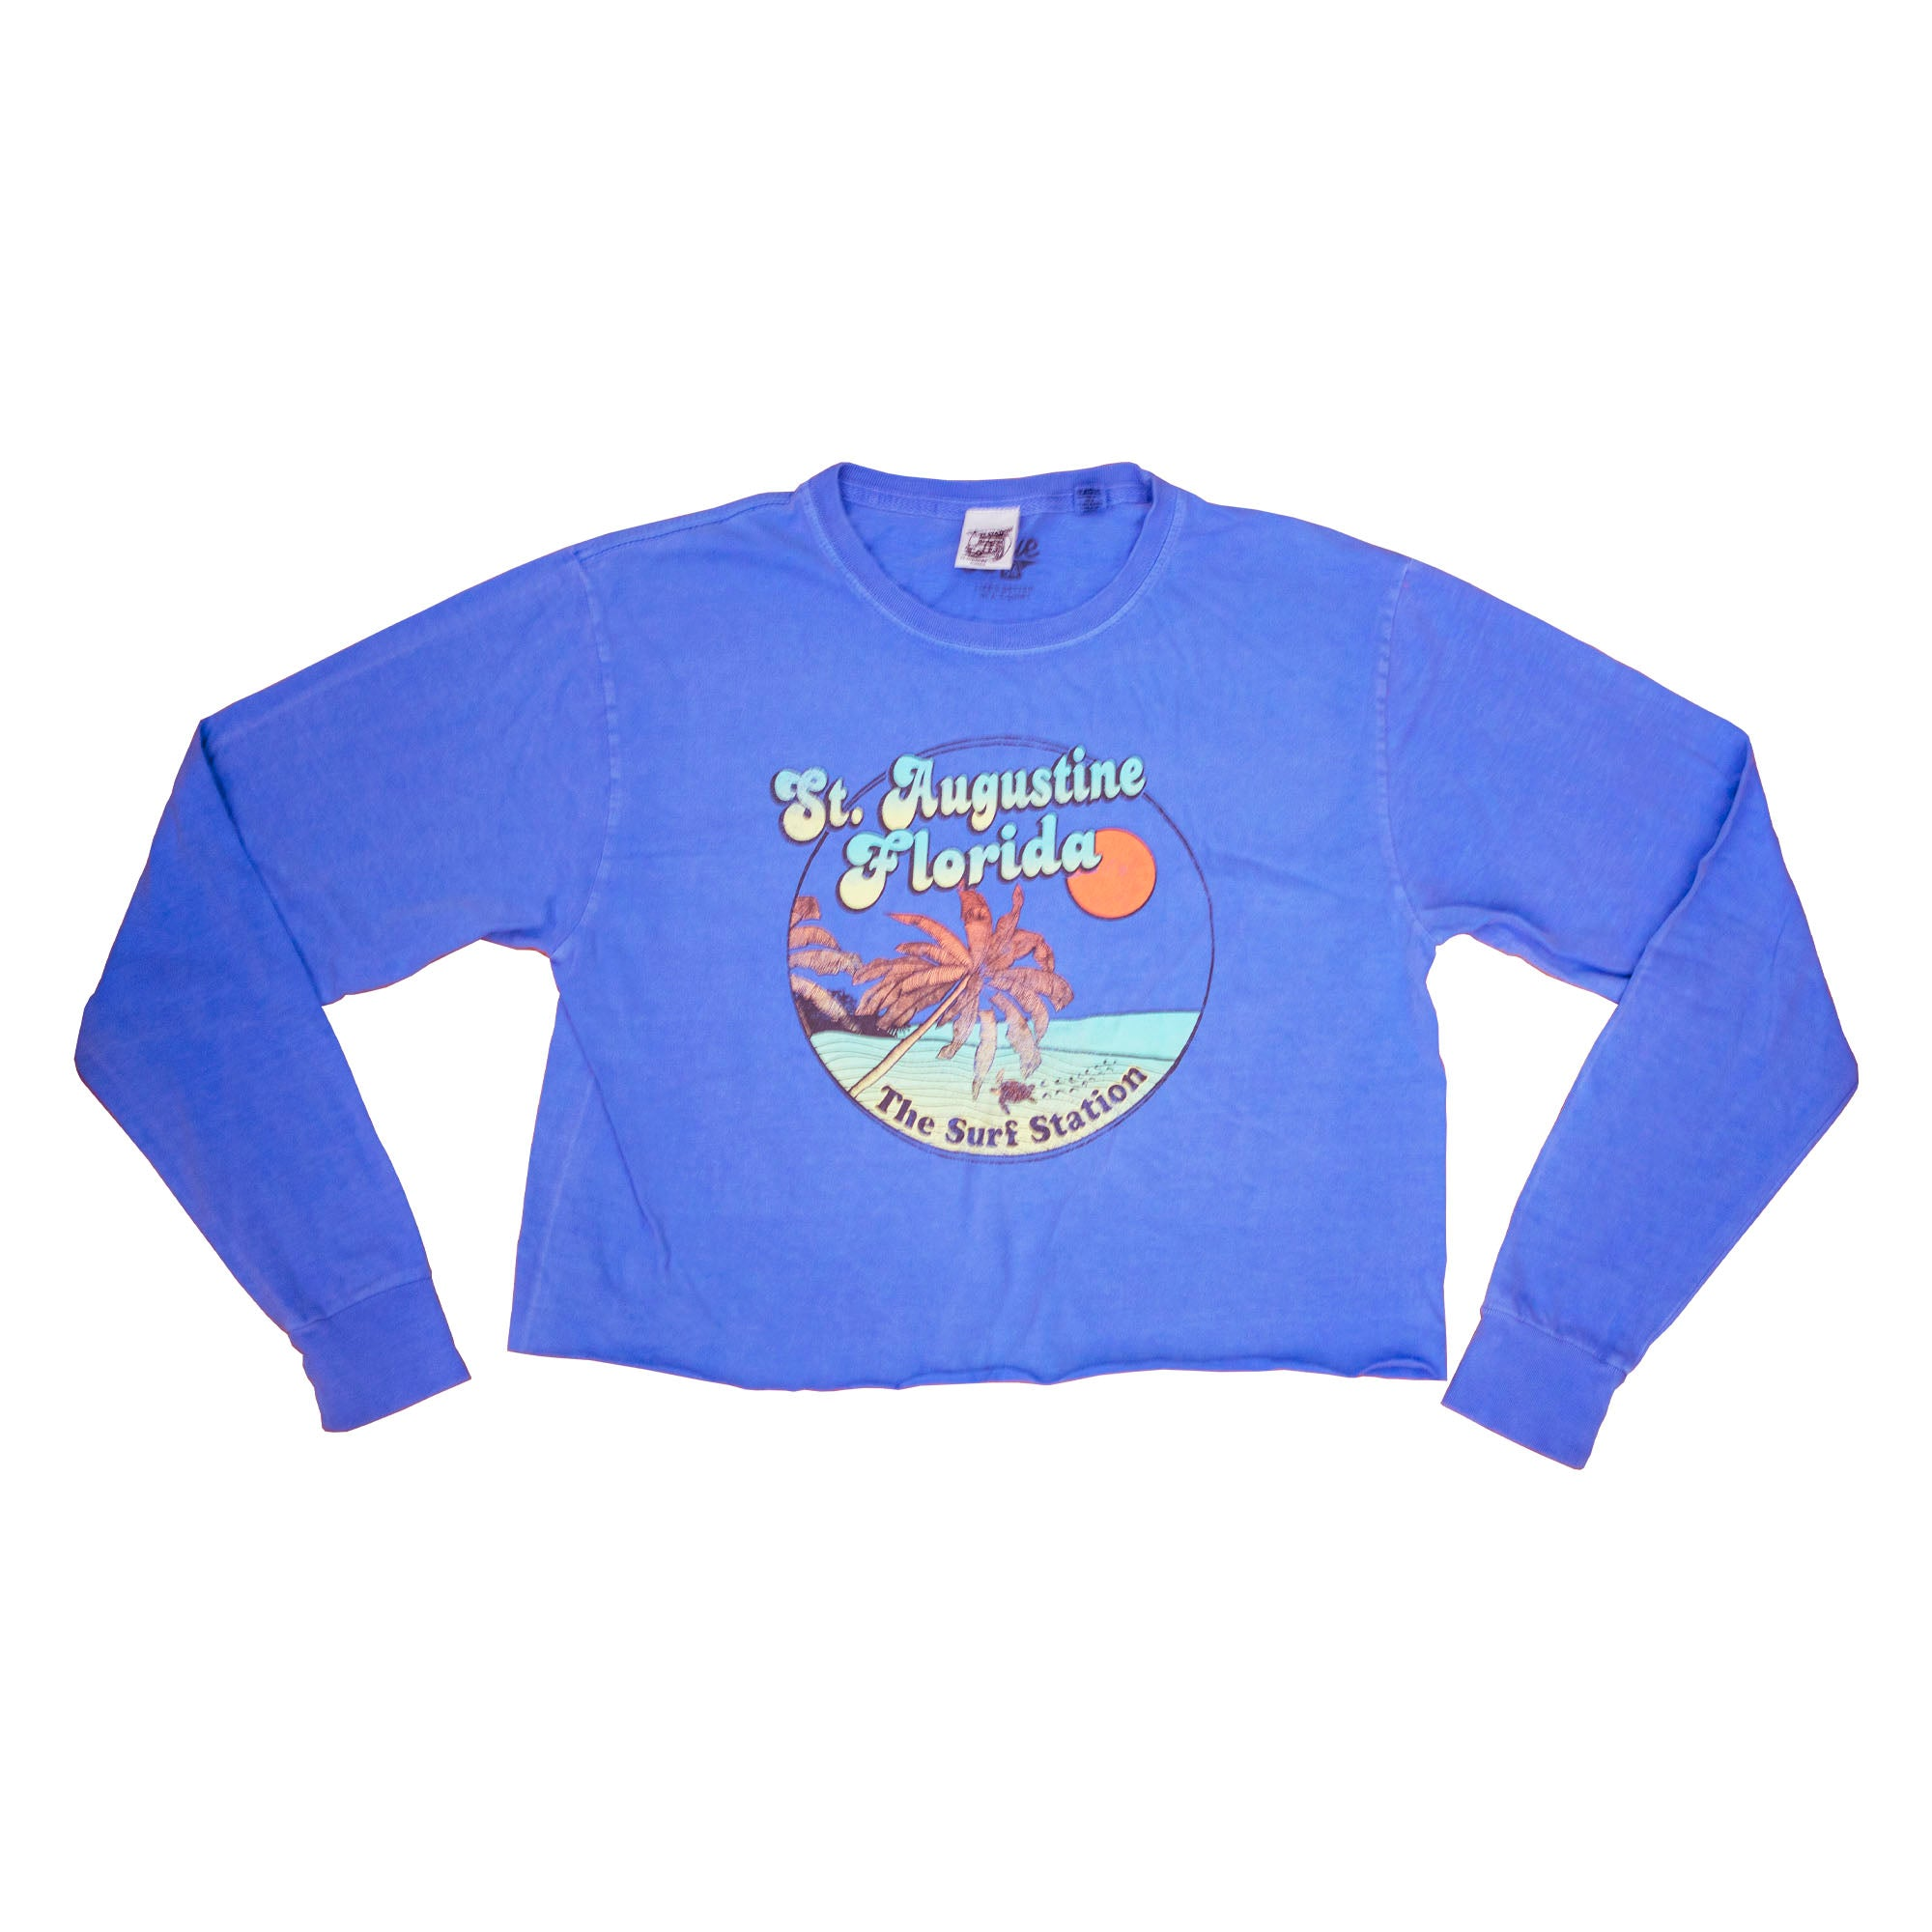 Surf Station Beach Women's Cropped L/S T-Shirt